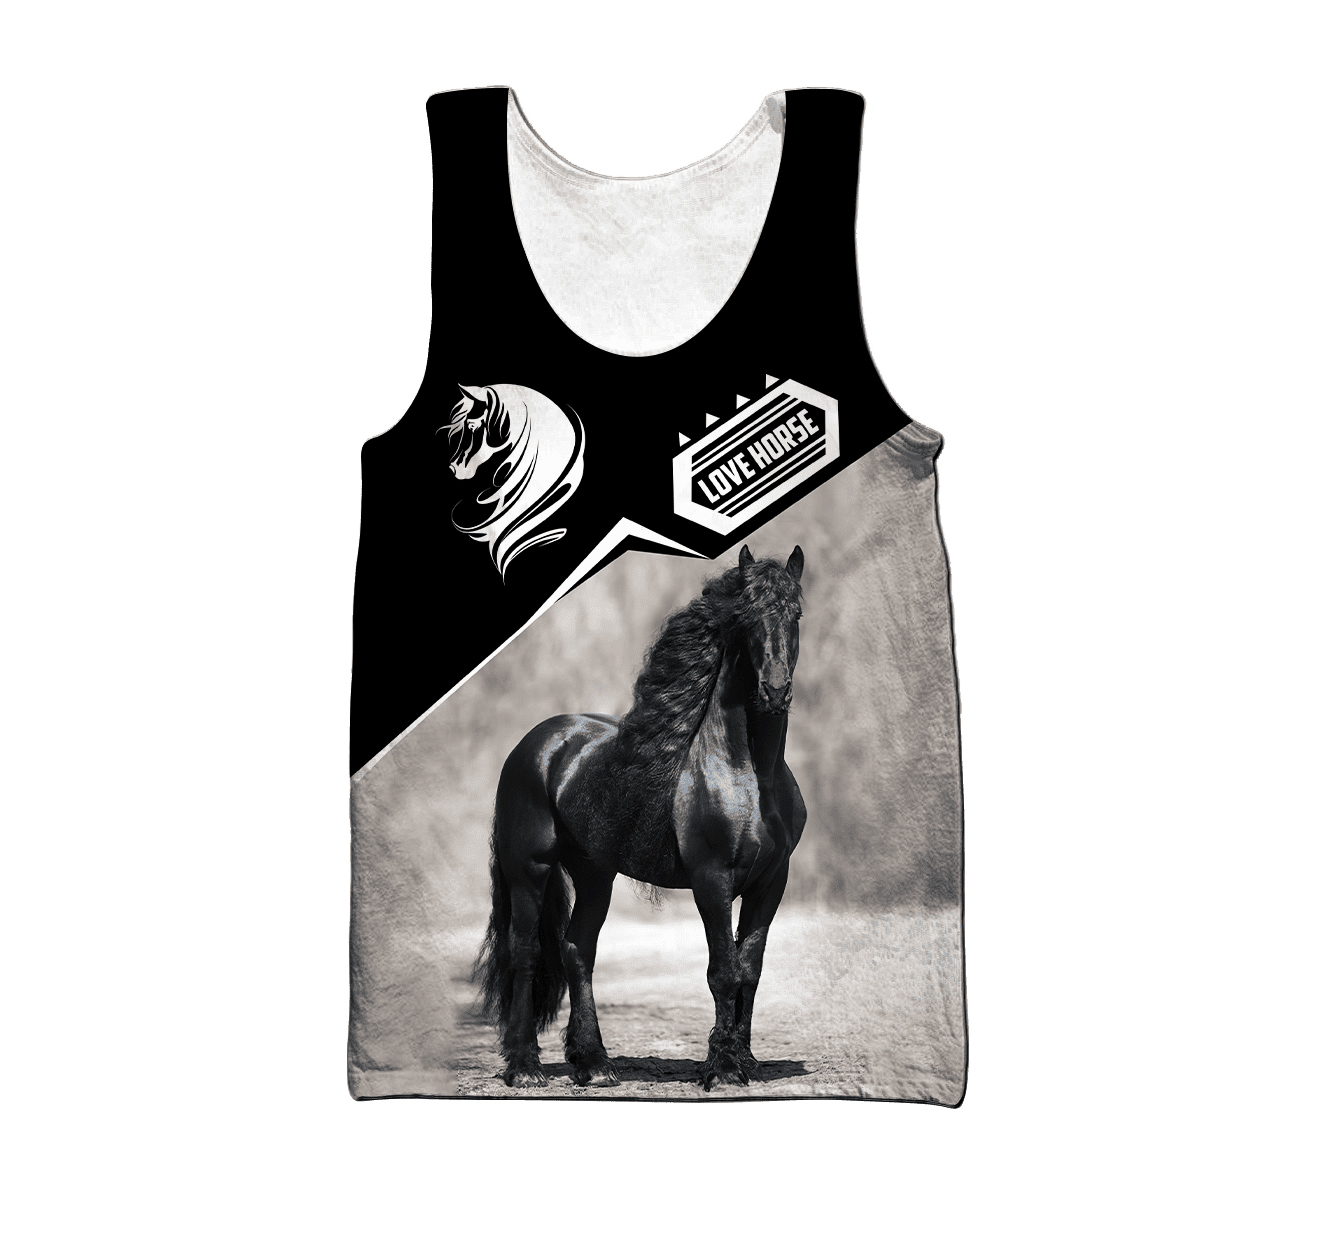 [HOT TREND] Personalized Name Friesian Horse 3D All Over Printed Unisex Shirt - Hothot 070921